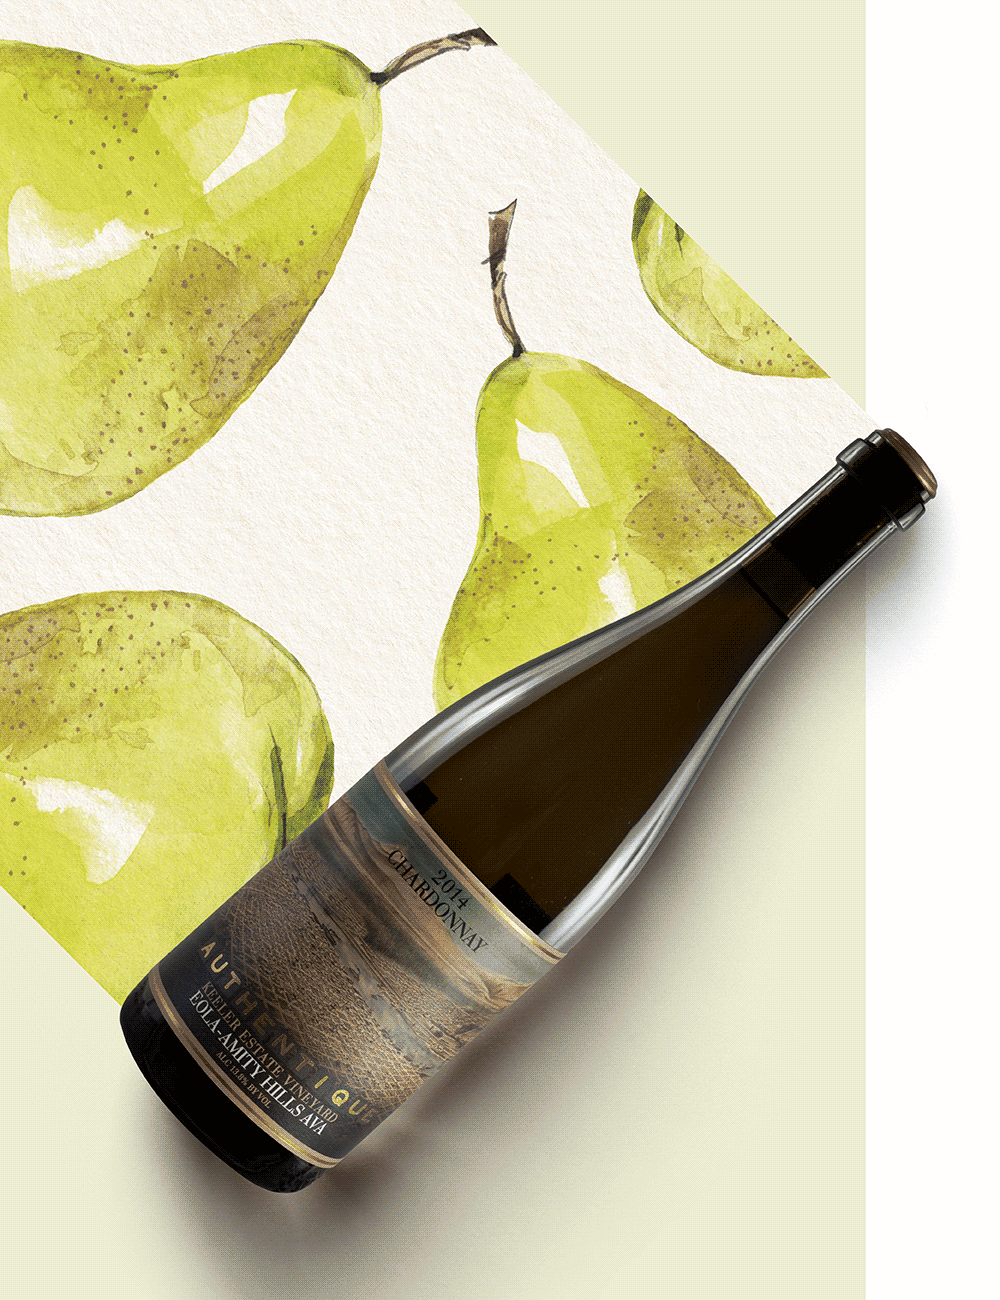 Authentique Keeler Estate Chardonnay 2014